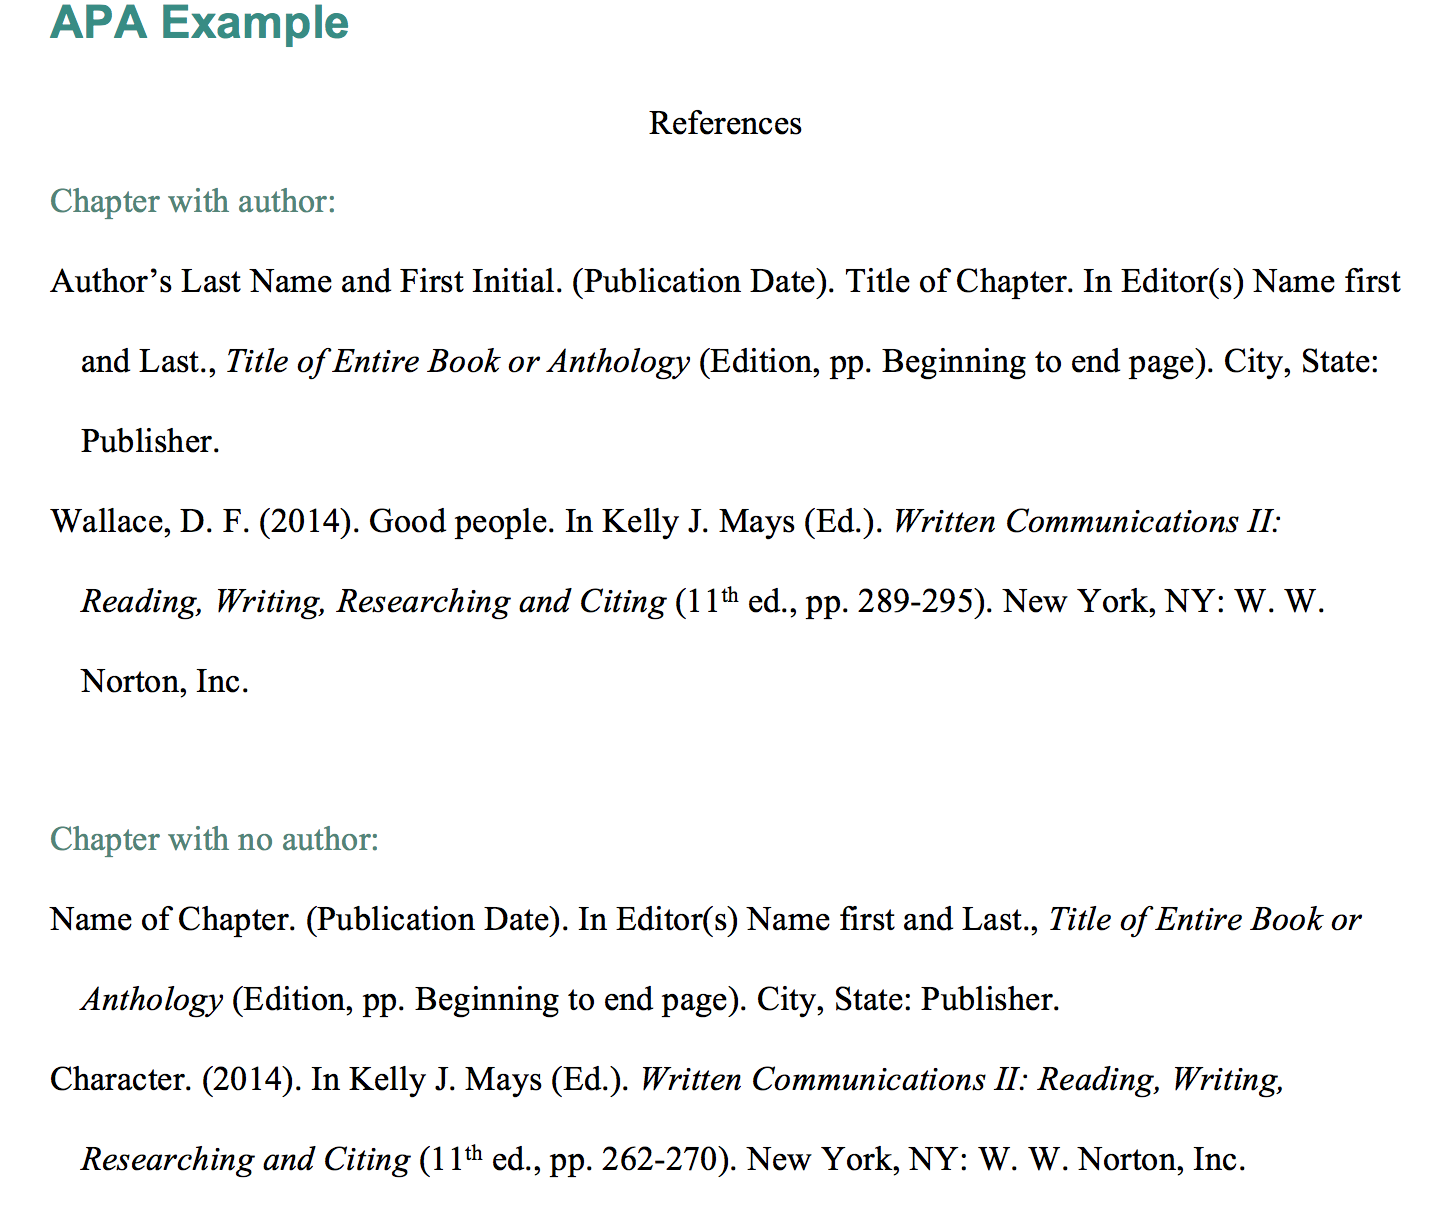 APA Example References Chapter with author:  Author's Last Name and First Initial. (Publication Date). Title of Chapter. In Editor(s) Name first and Last., Title of Entire Book or Anthology (Edition, pp. Beginning to end page). City, State: Publisher. Wallace, D. F. (2014). Good people. In Kelly J. Mays (Ed.). Written Communications II: Reading, Writing, Researching and Citing (11th ed., pp. 289-295). New York, NY: W. W. Norton, Inc.  Chapter with no author: Name of Chapter. (Publication Date). In Editor(s) Name first and Last., Title of Entire Book or Anthology (Edition, pp. Beginning to end page). City, State: Publisher. Character. (2014). In Kelly J. Mays (Ed.). Written Communications II: Reading, Writing, Researching and Citing (11th ed., pp. 262-270). New York, NY: W. W. Norton, Inc.